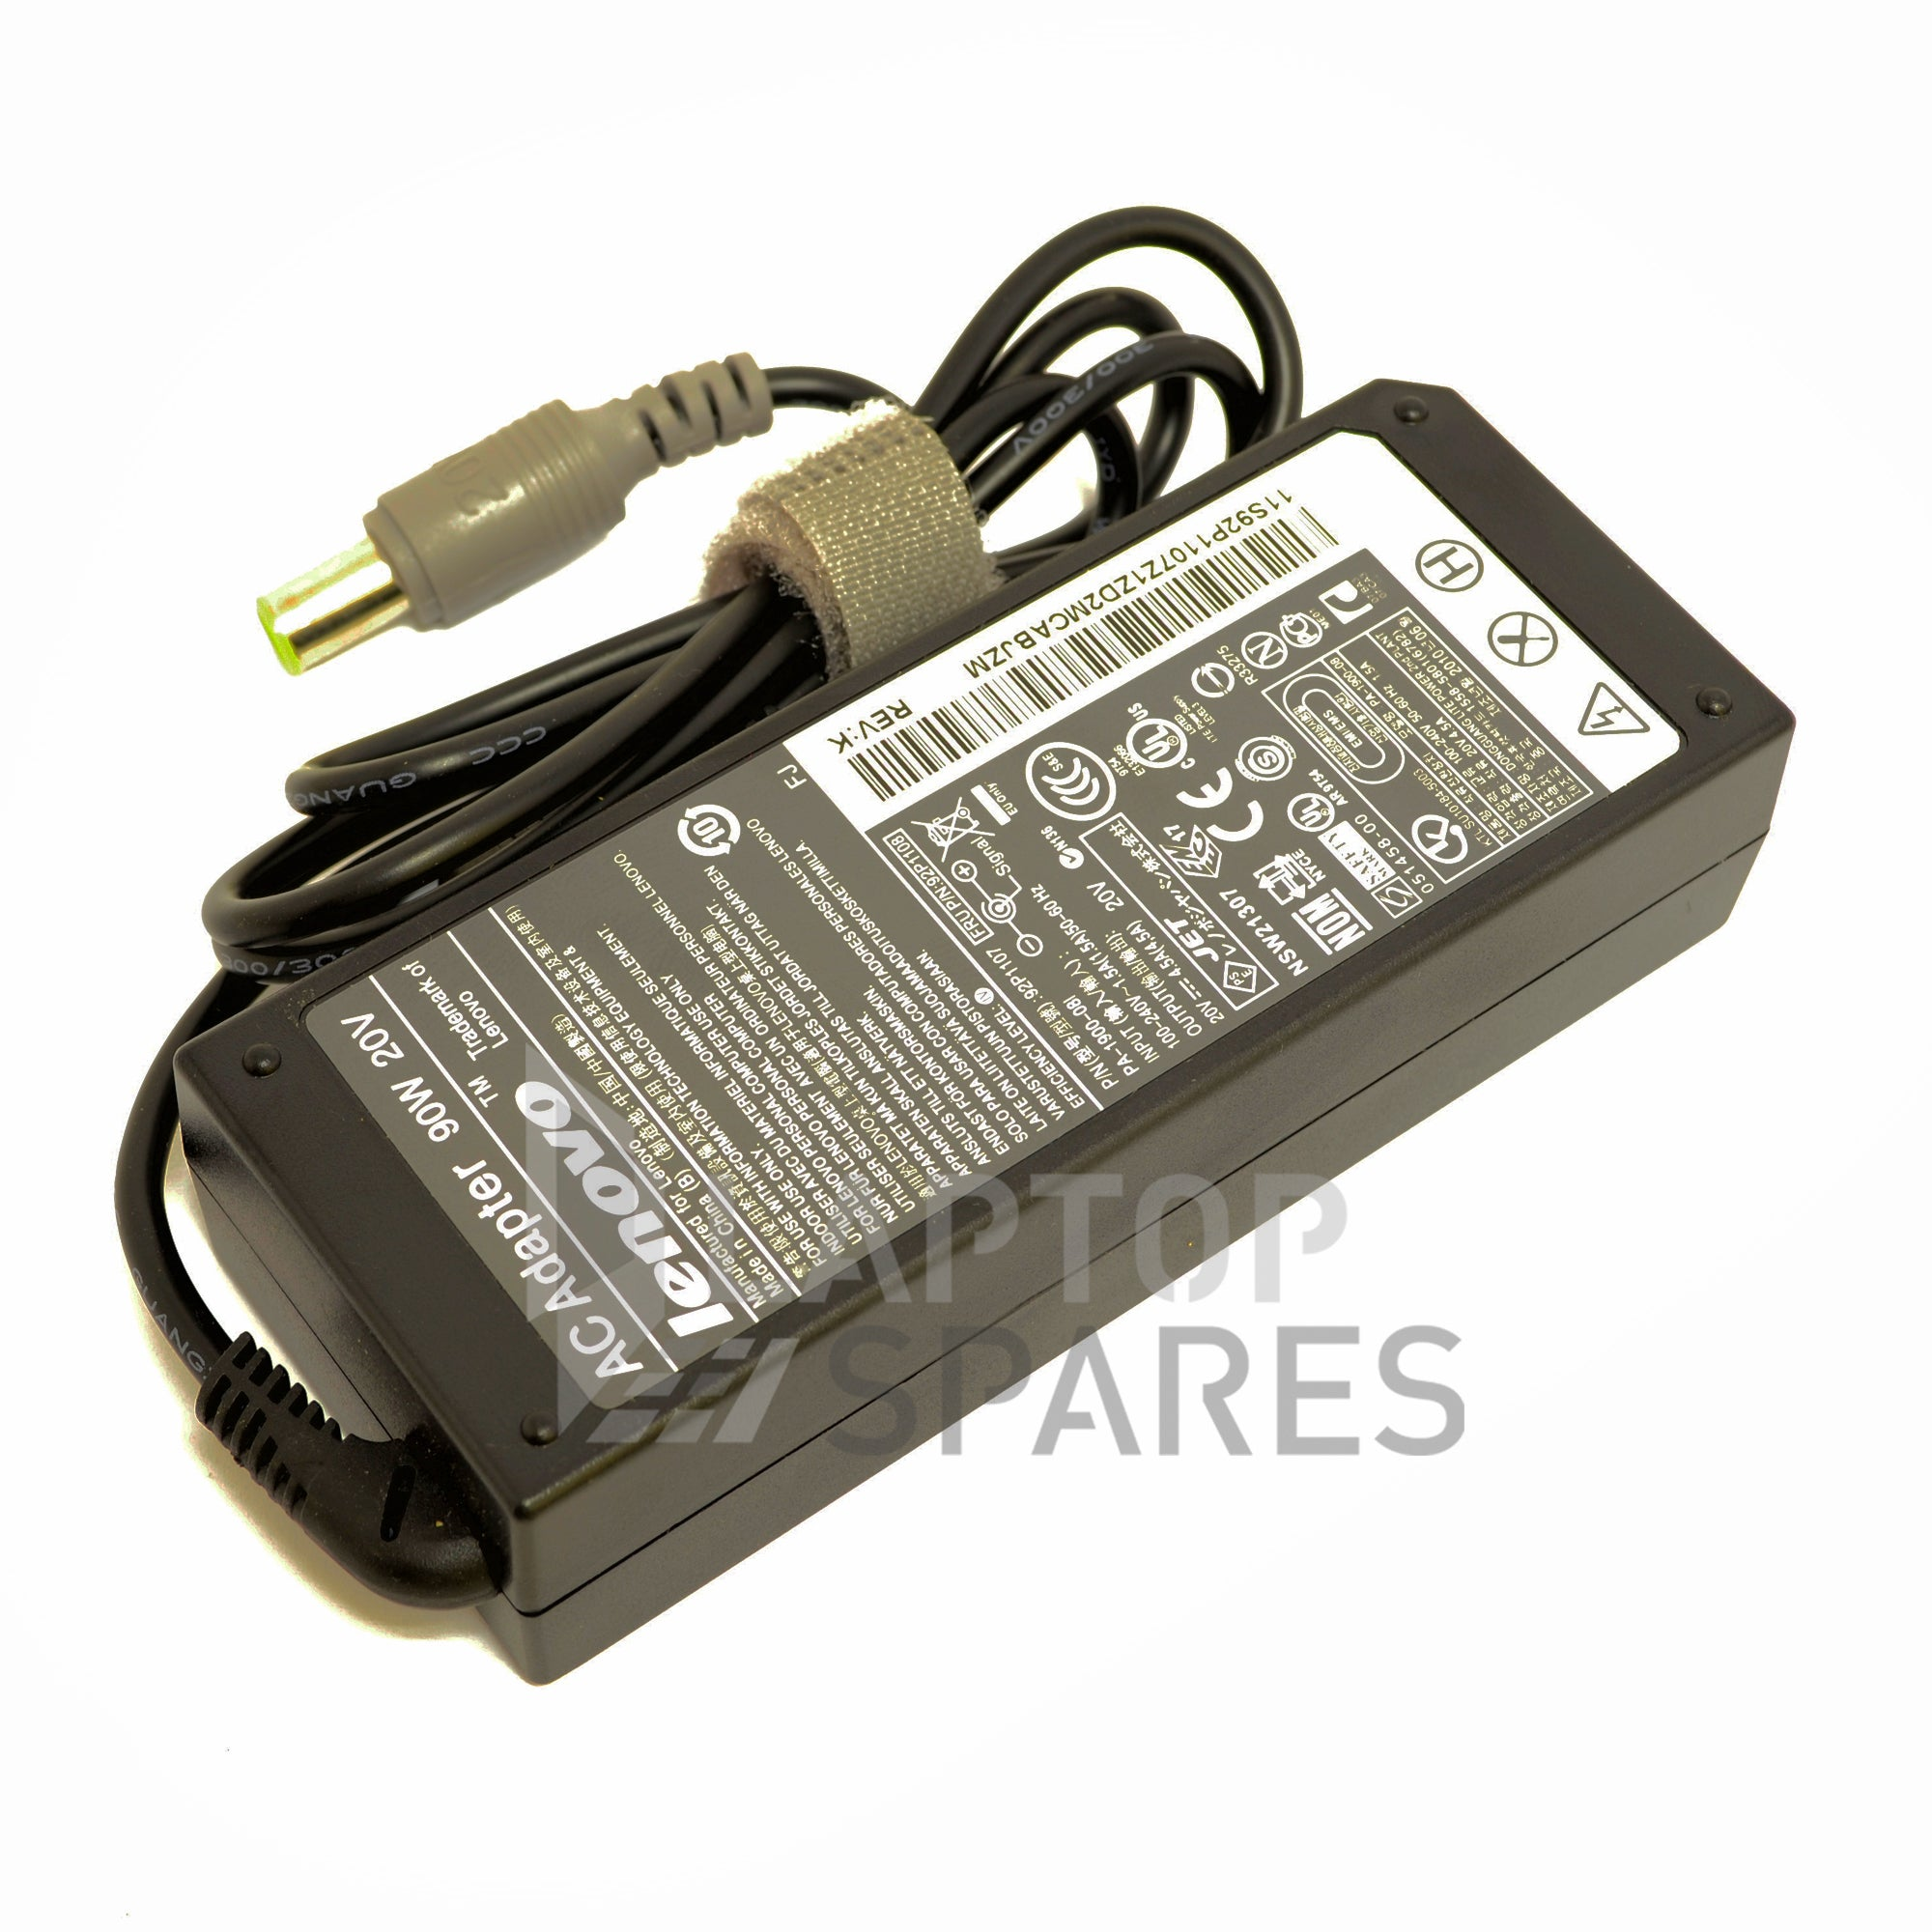 Lenovo 92P1253 92P1254 Laptop AC Adapter Charger